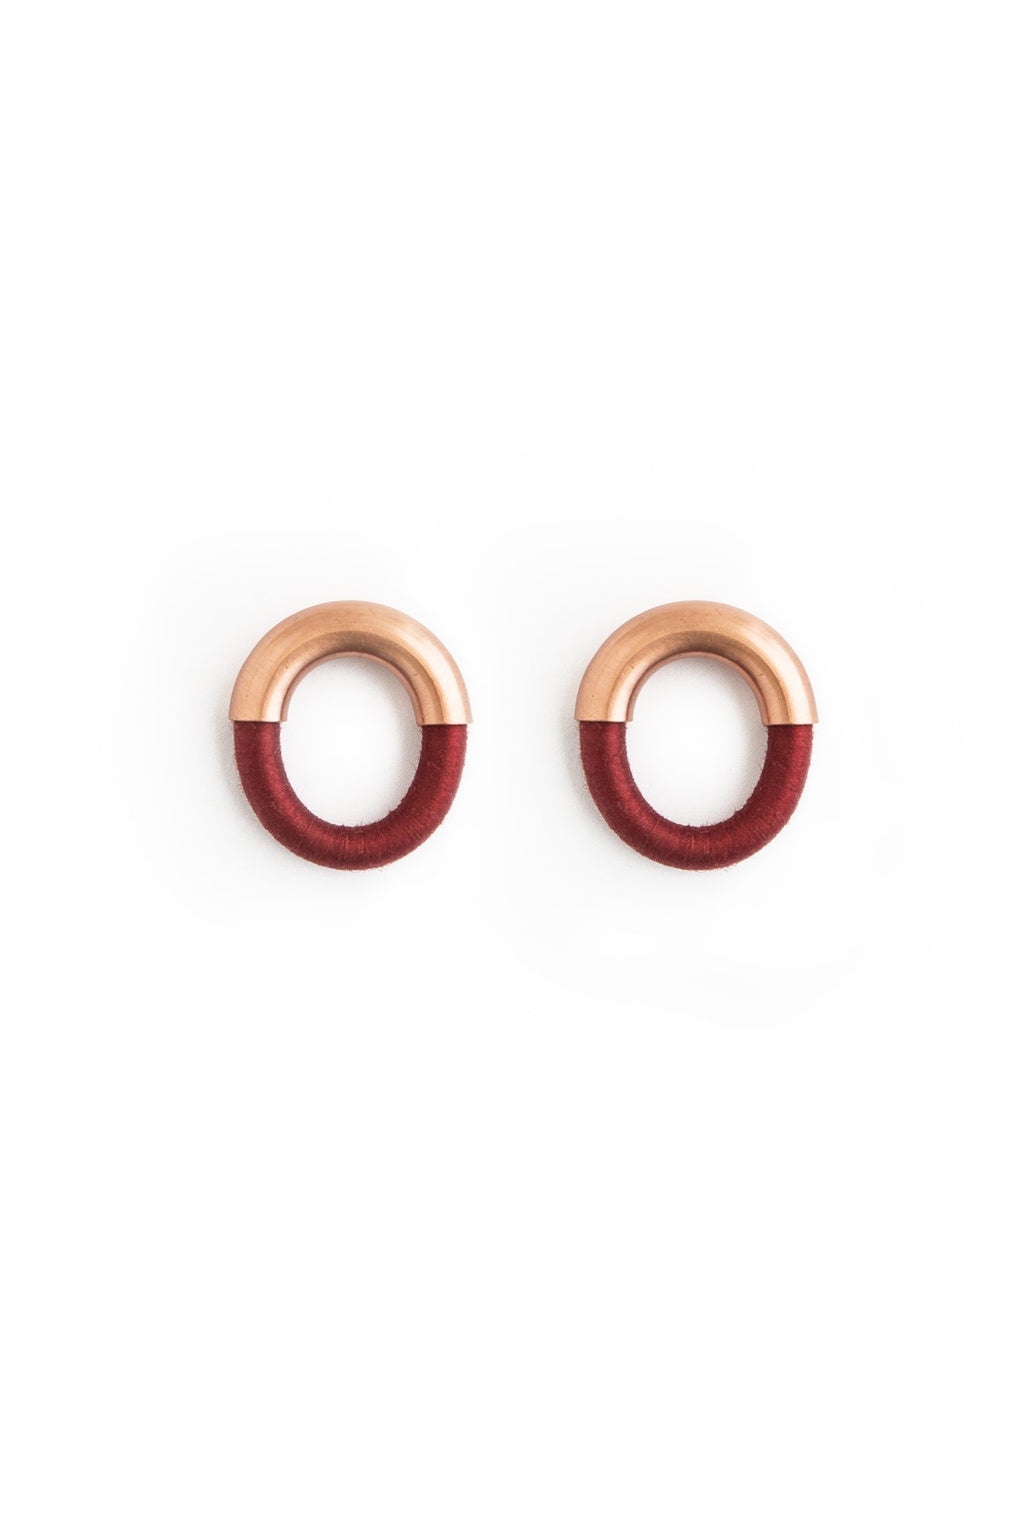 OKO earrings N°2